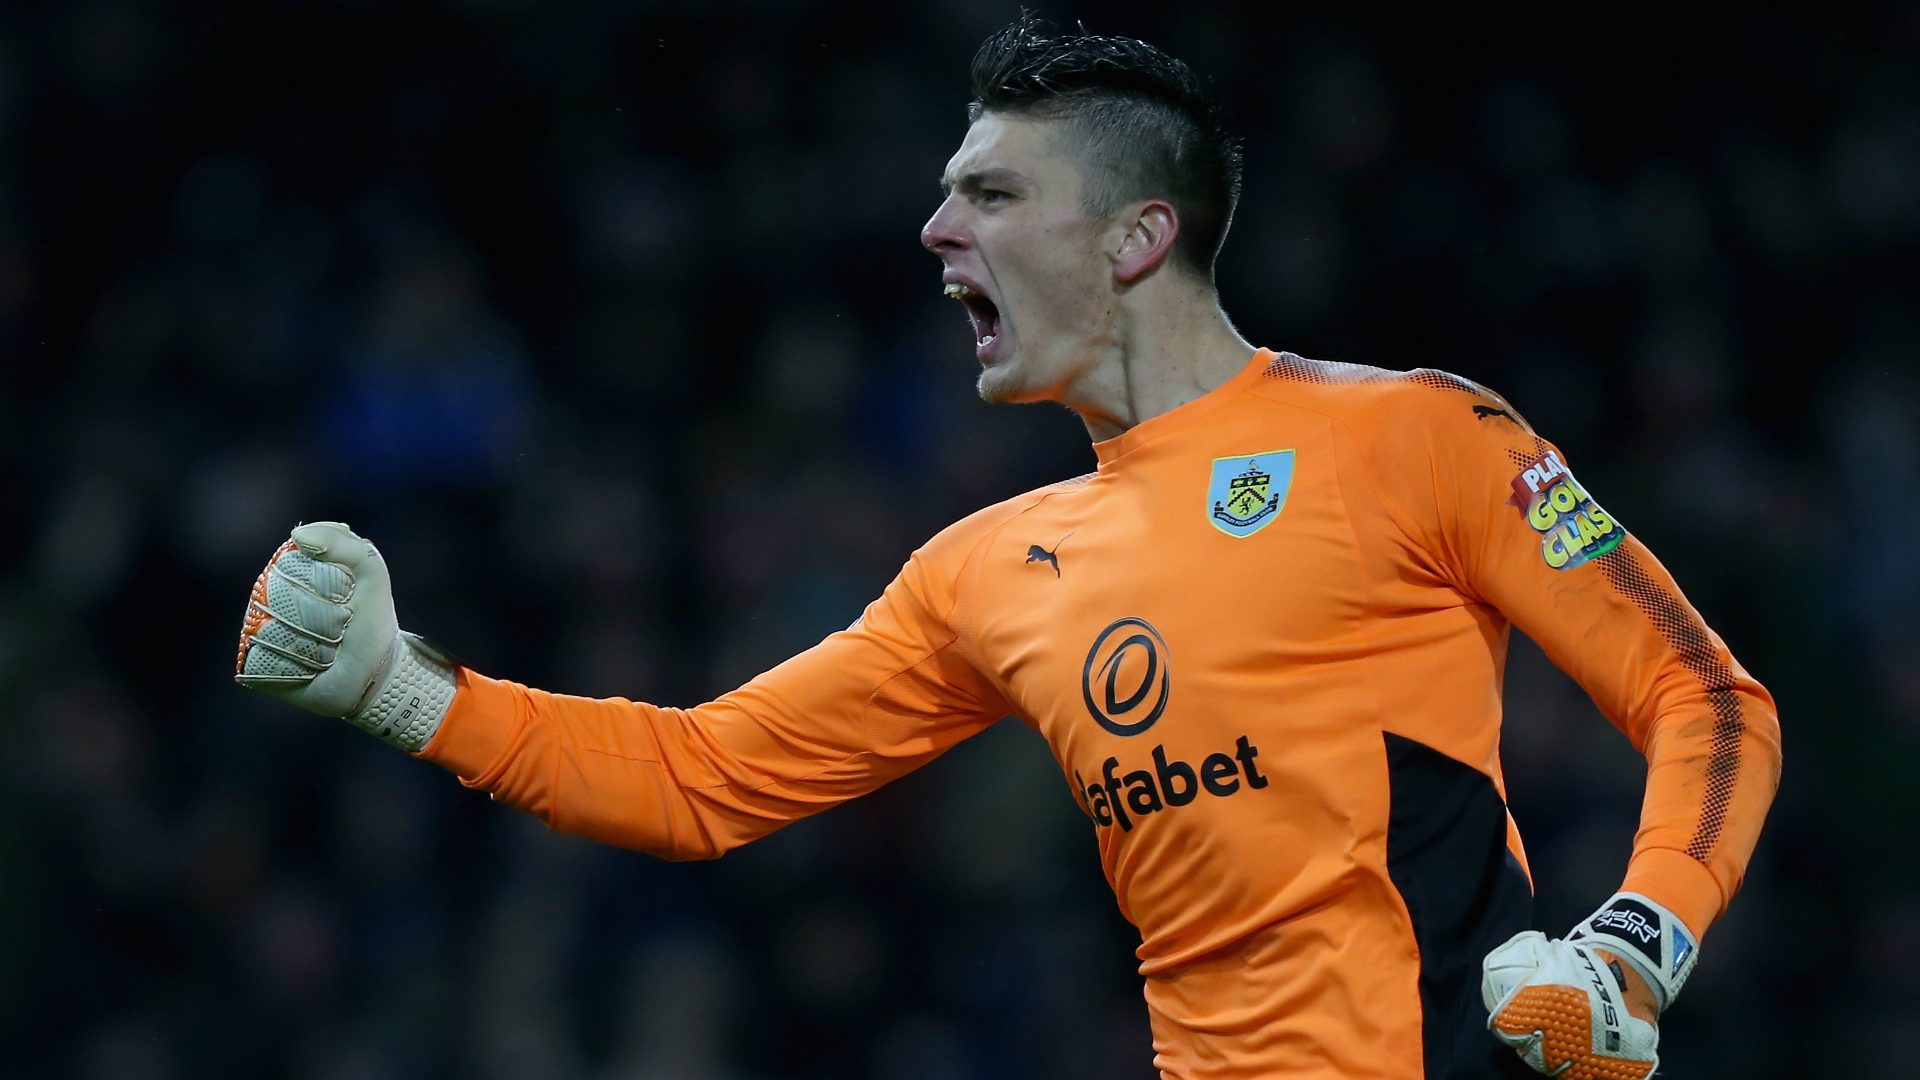 Pope commits to Burnley after injury woes